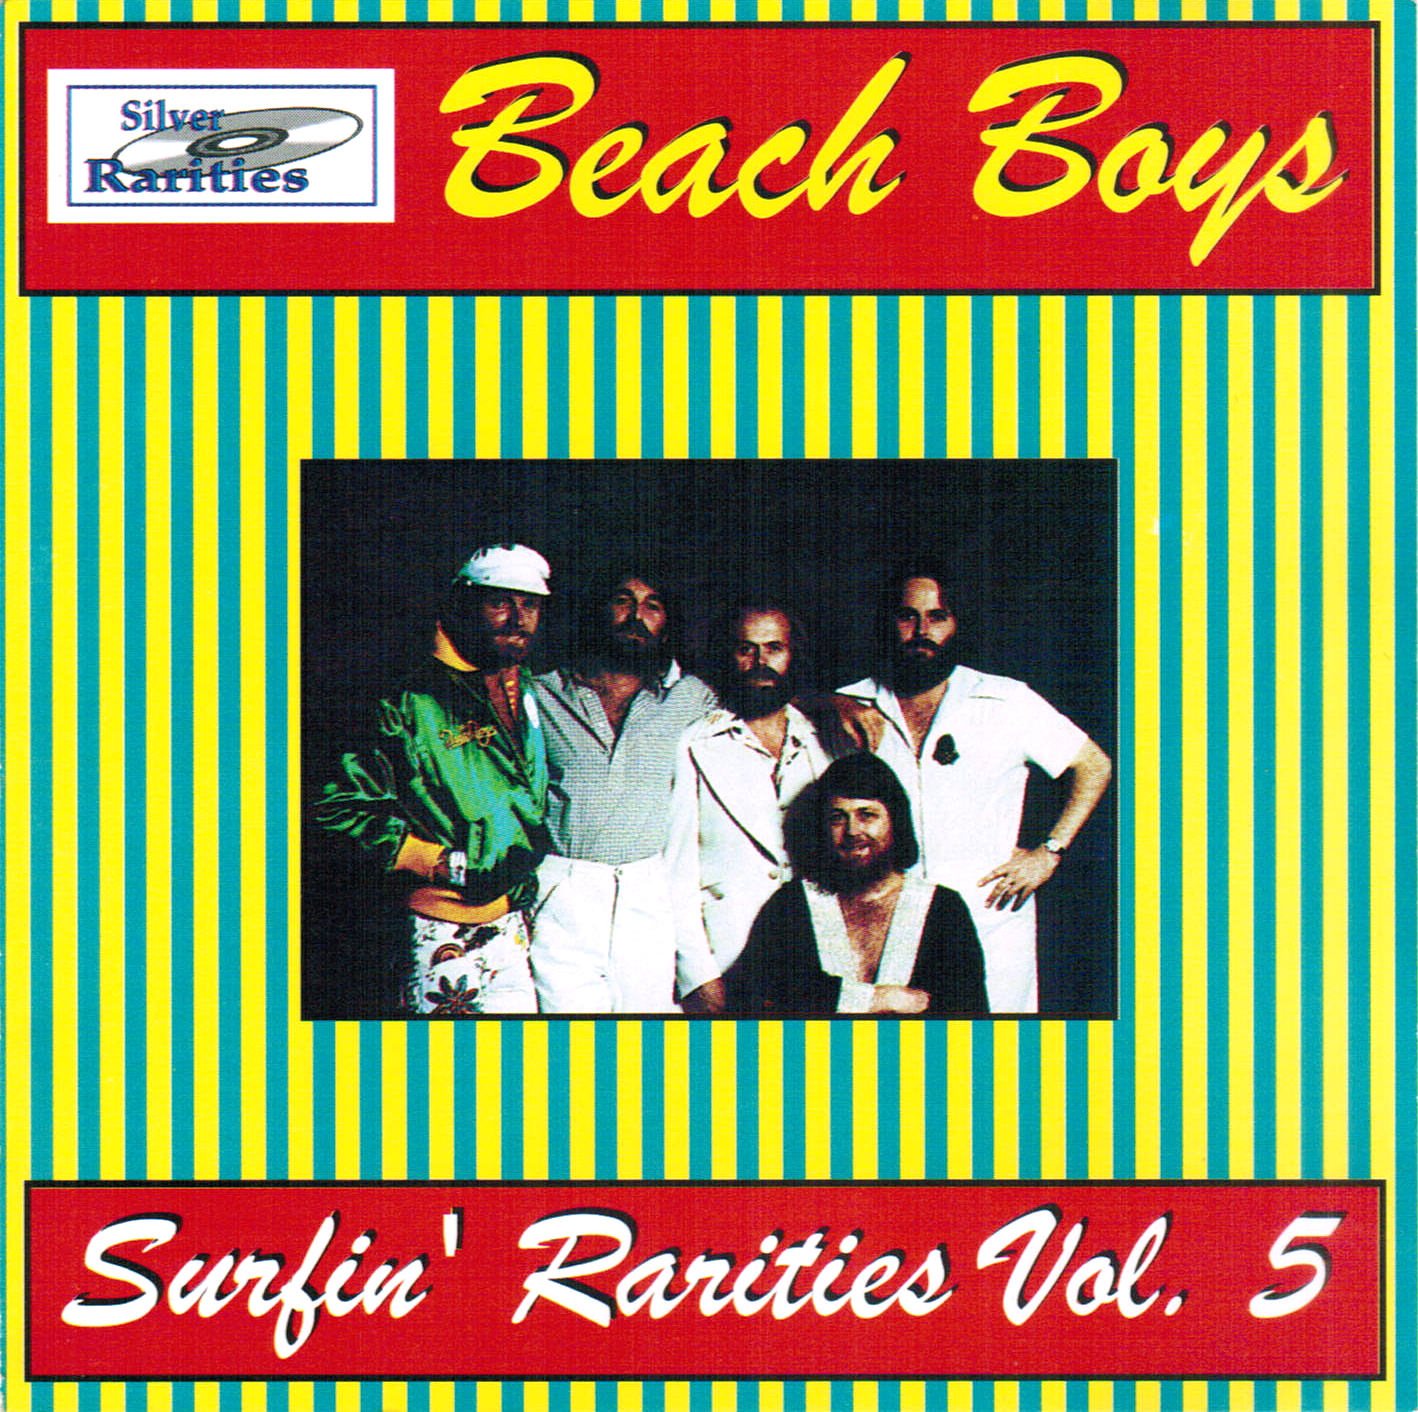 Surfin' Rarities Vol. 5 cover